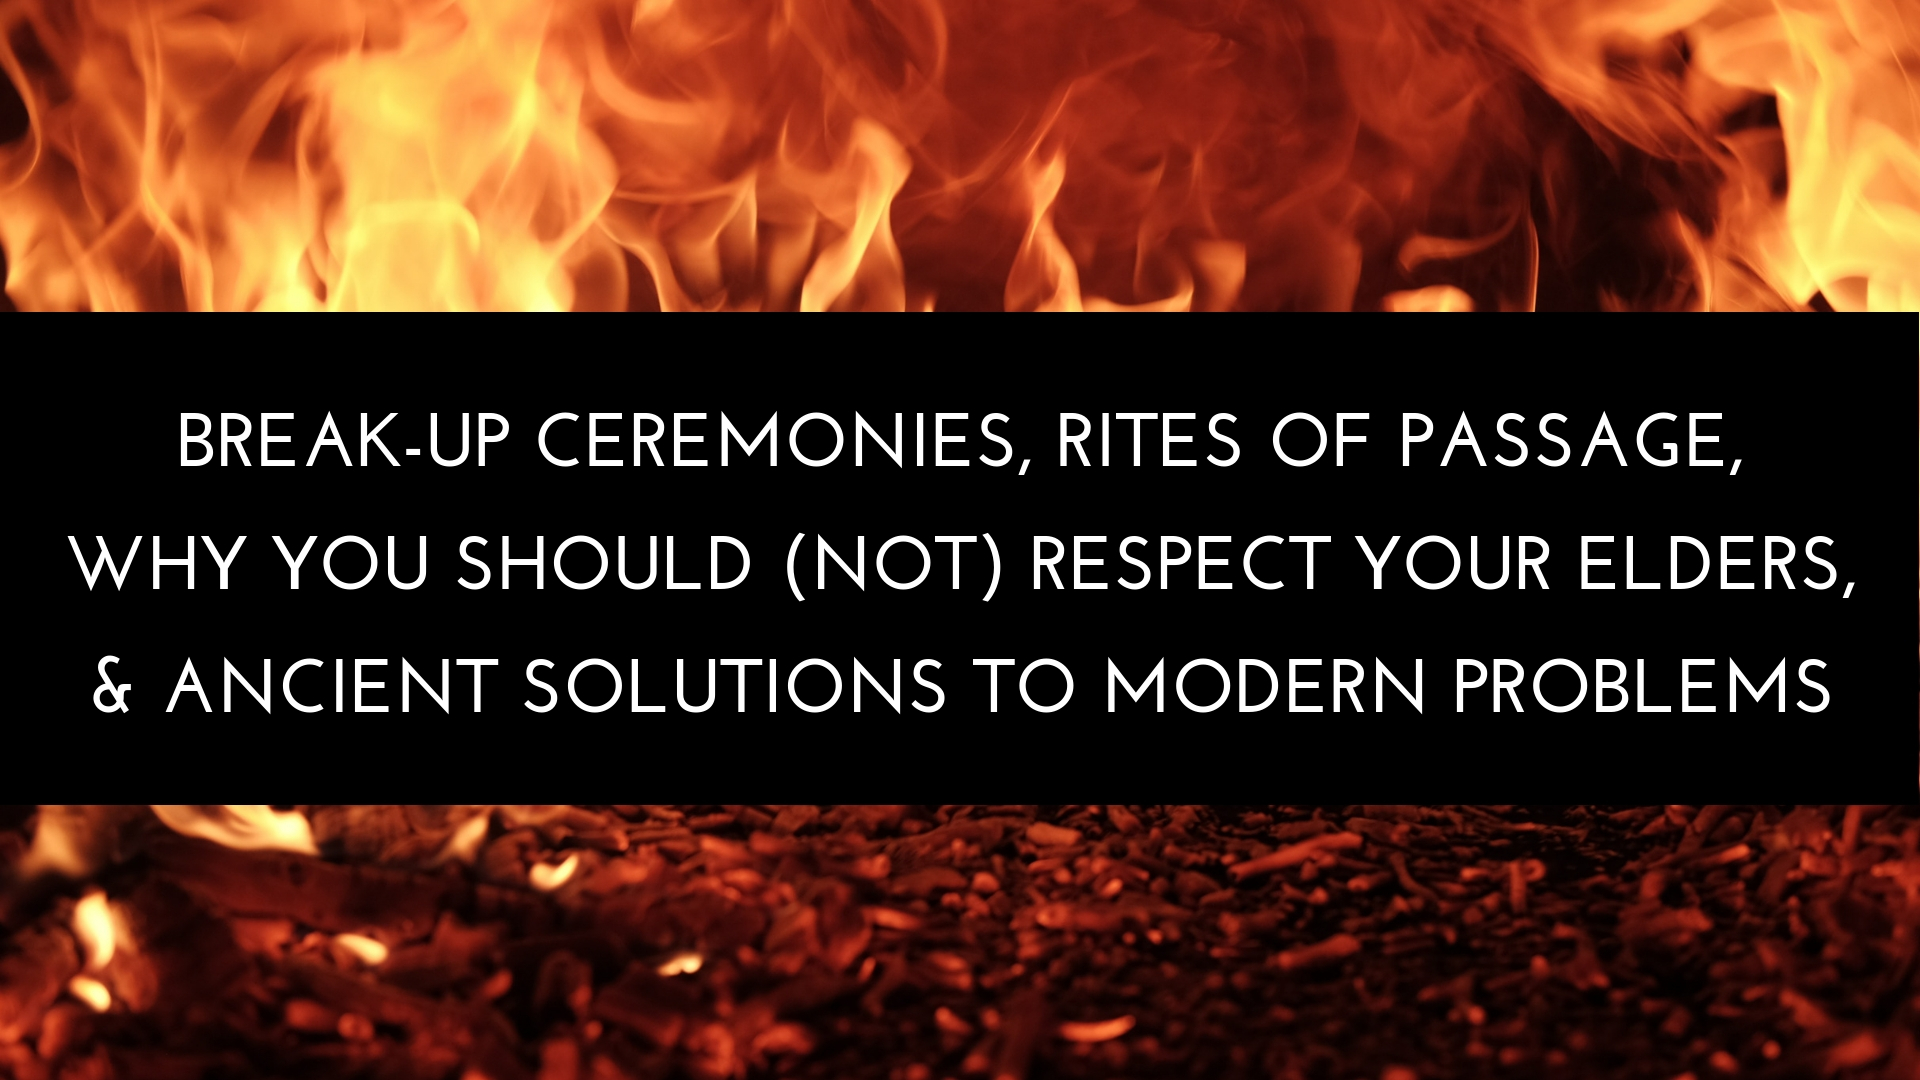 BREAK-UP CEREMONIES, RITES OF PASSAGE,  WHY YOU SHOULD (NOT) RESPECT YOUR ELDERS,  & ANCIENT SOLUTIONS TO MODERN PROBLEMS